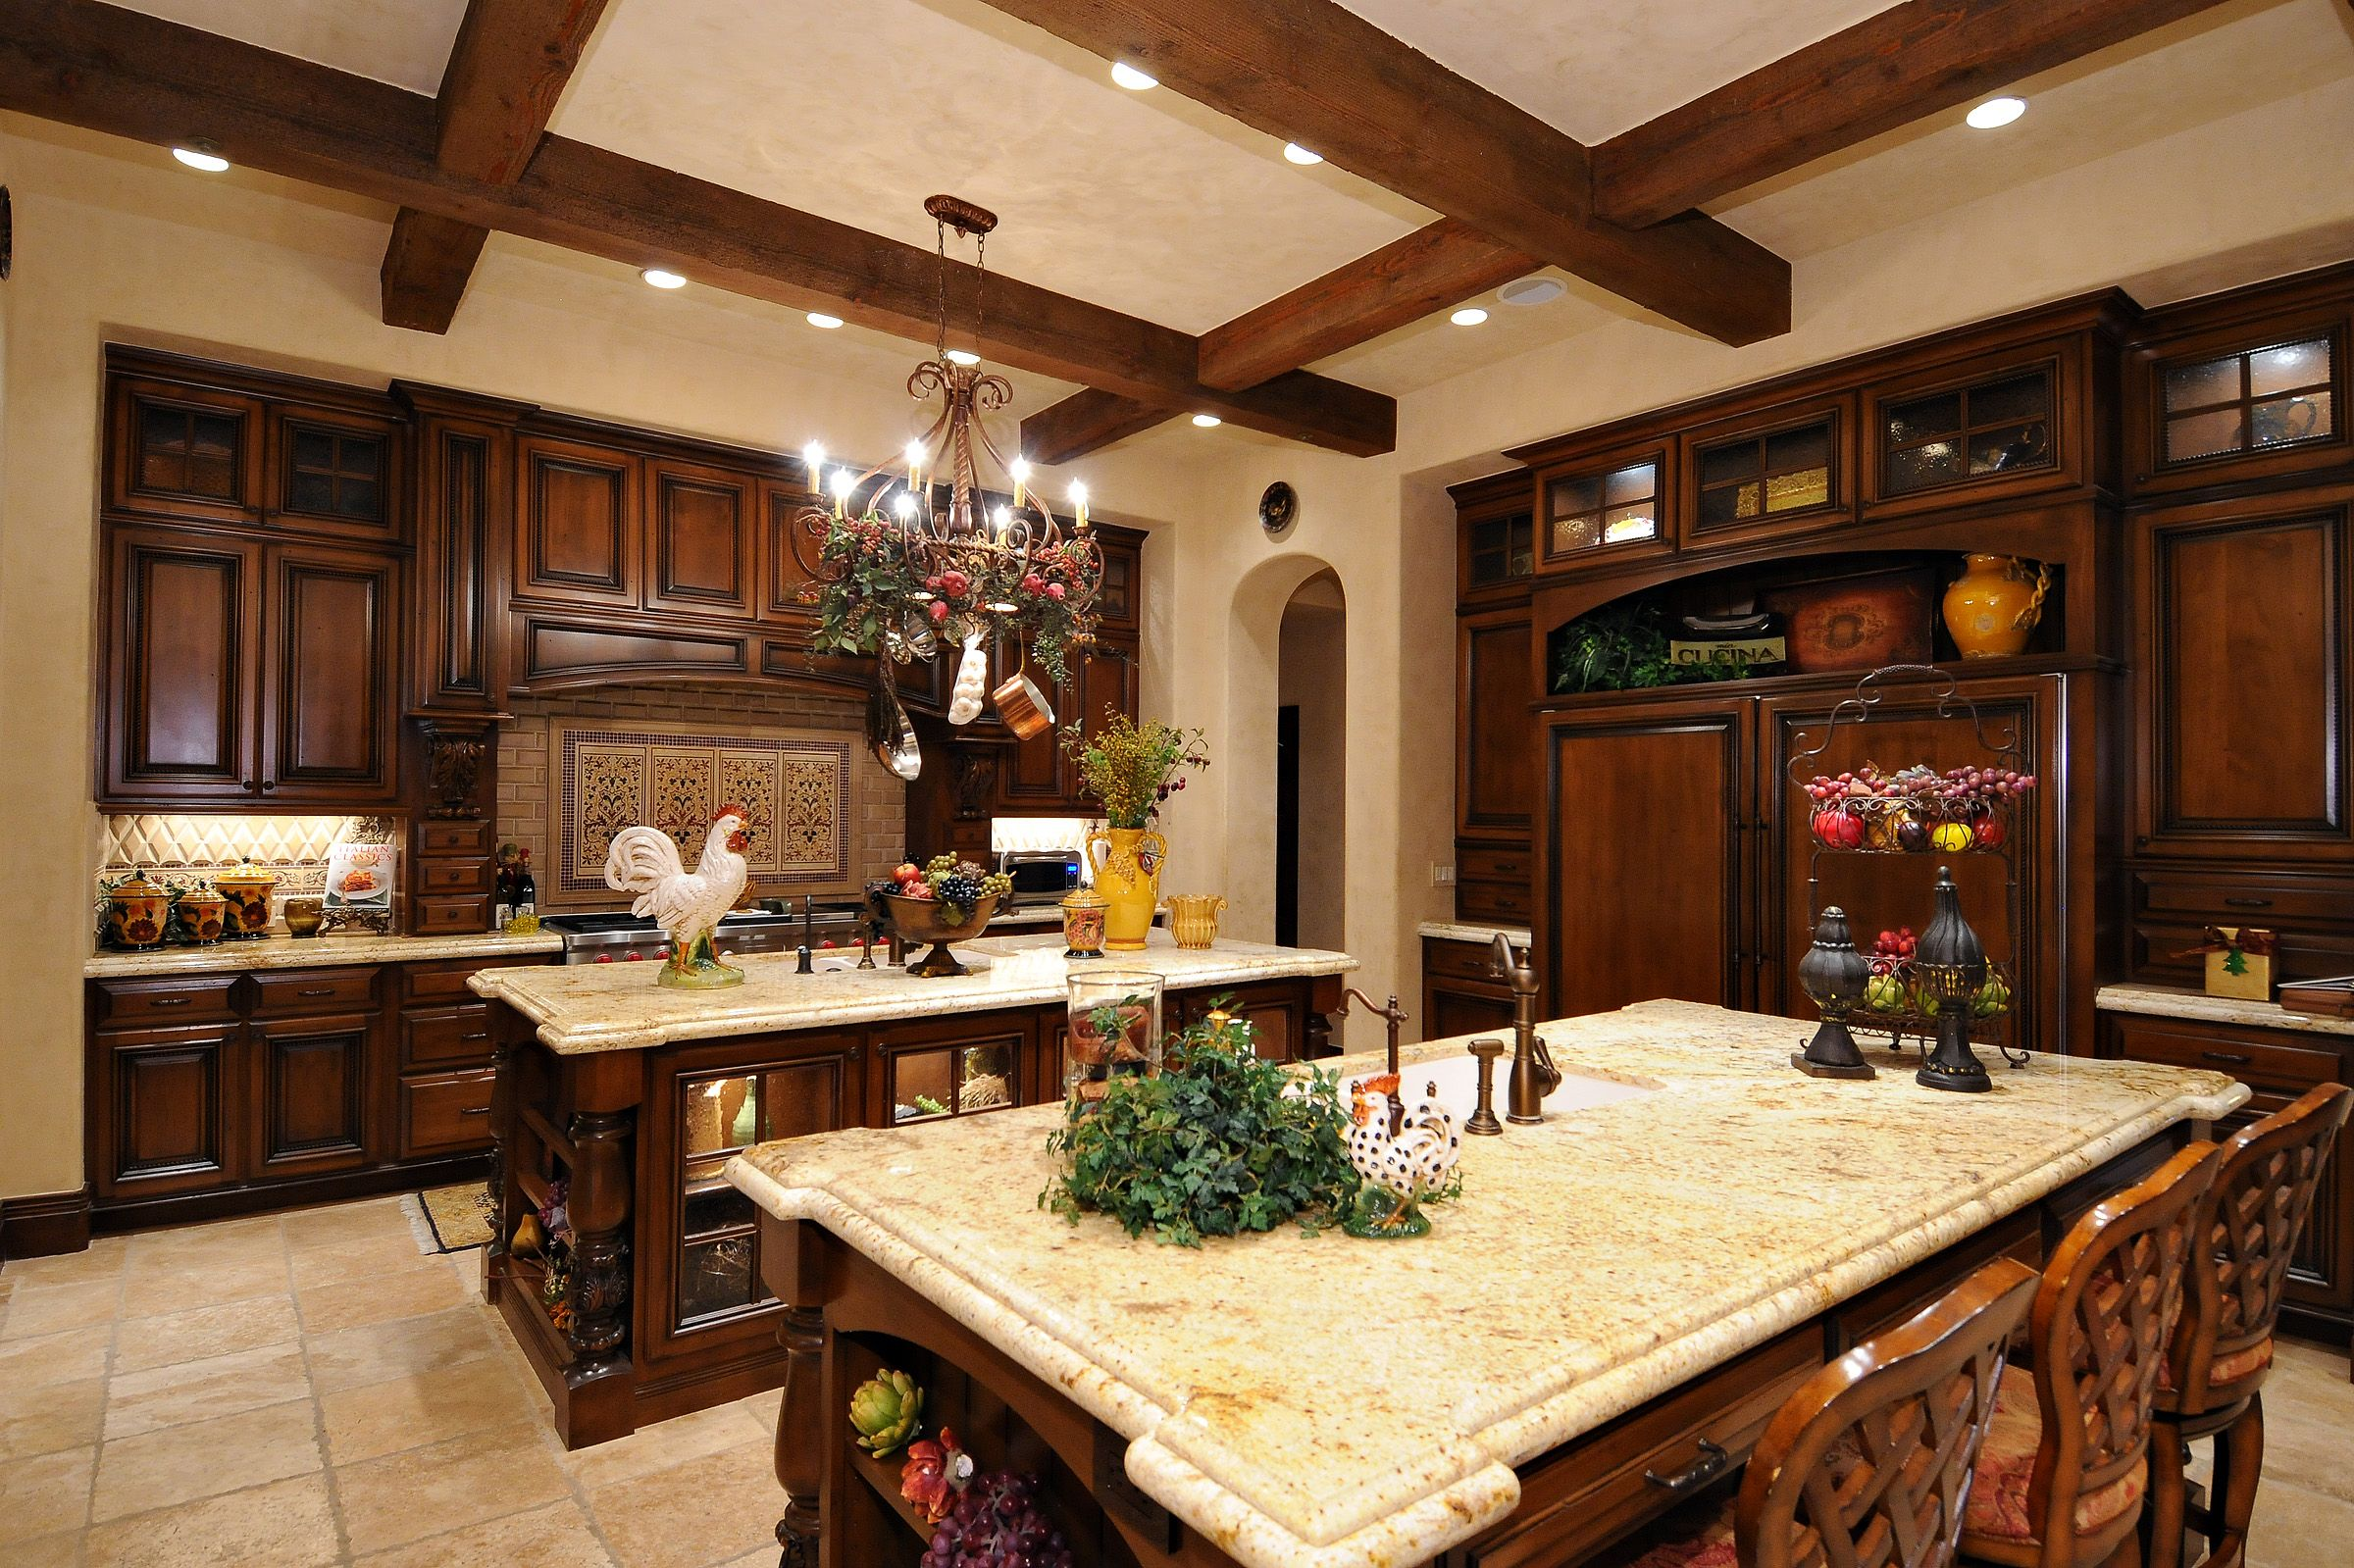 7663bc1b5b378902cac5948a491932db Star Luxury Mediterranean House Plans on southern house plans, modern one story house plans, bungalow house plans, dream luxury house plans, luxury ranch style house plans, traditional house plans, narrow lot house plans, large mansion house plans, small house plans, luxury 3-story house plans, duplex house plans, open concept house plans, unique luxury house plans, open one story house plans, luxury 6 bedroom house plans, tuscan style house plans, spanish courtyard house plans, country house plans, large one story house plans, european house plans,